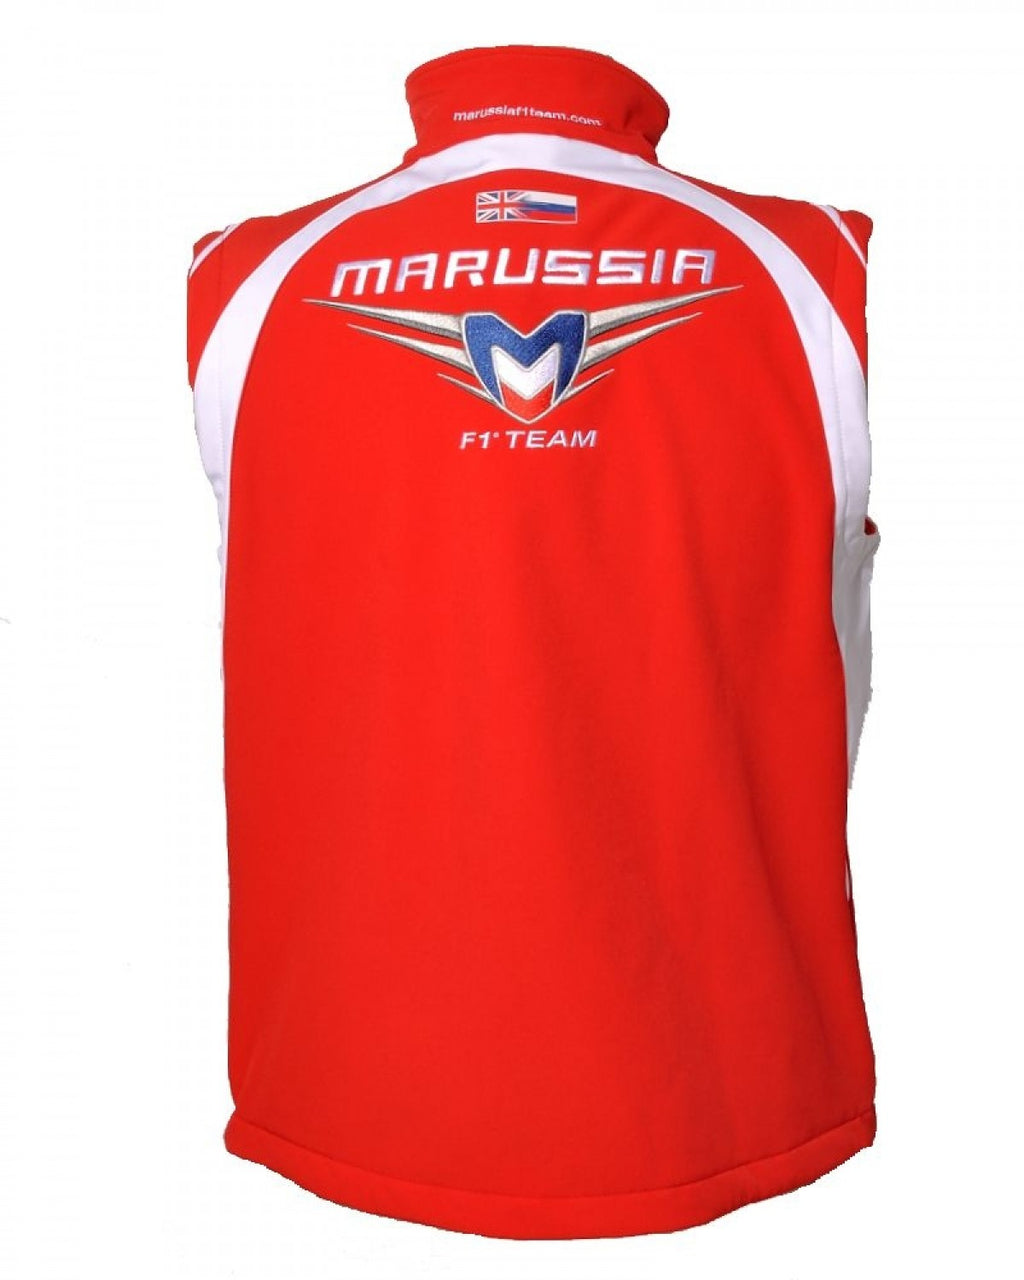 RACE GILLET - One All Sports